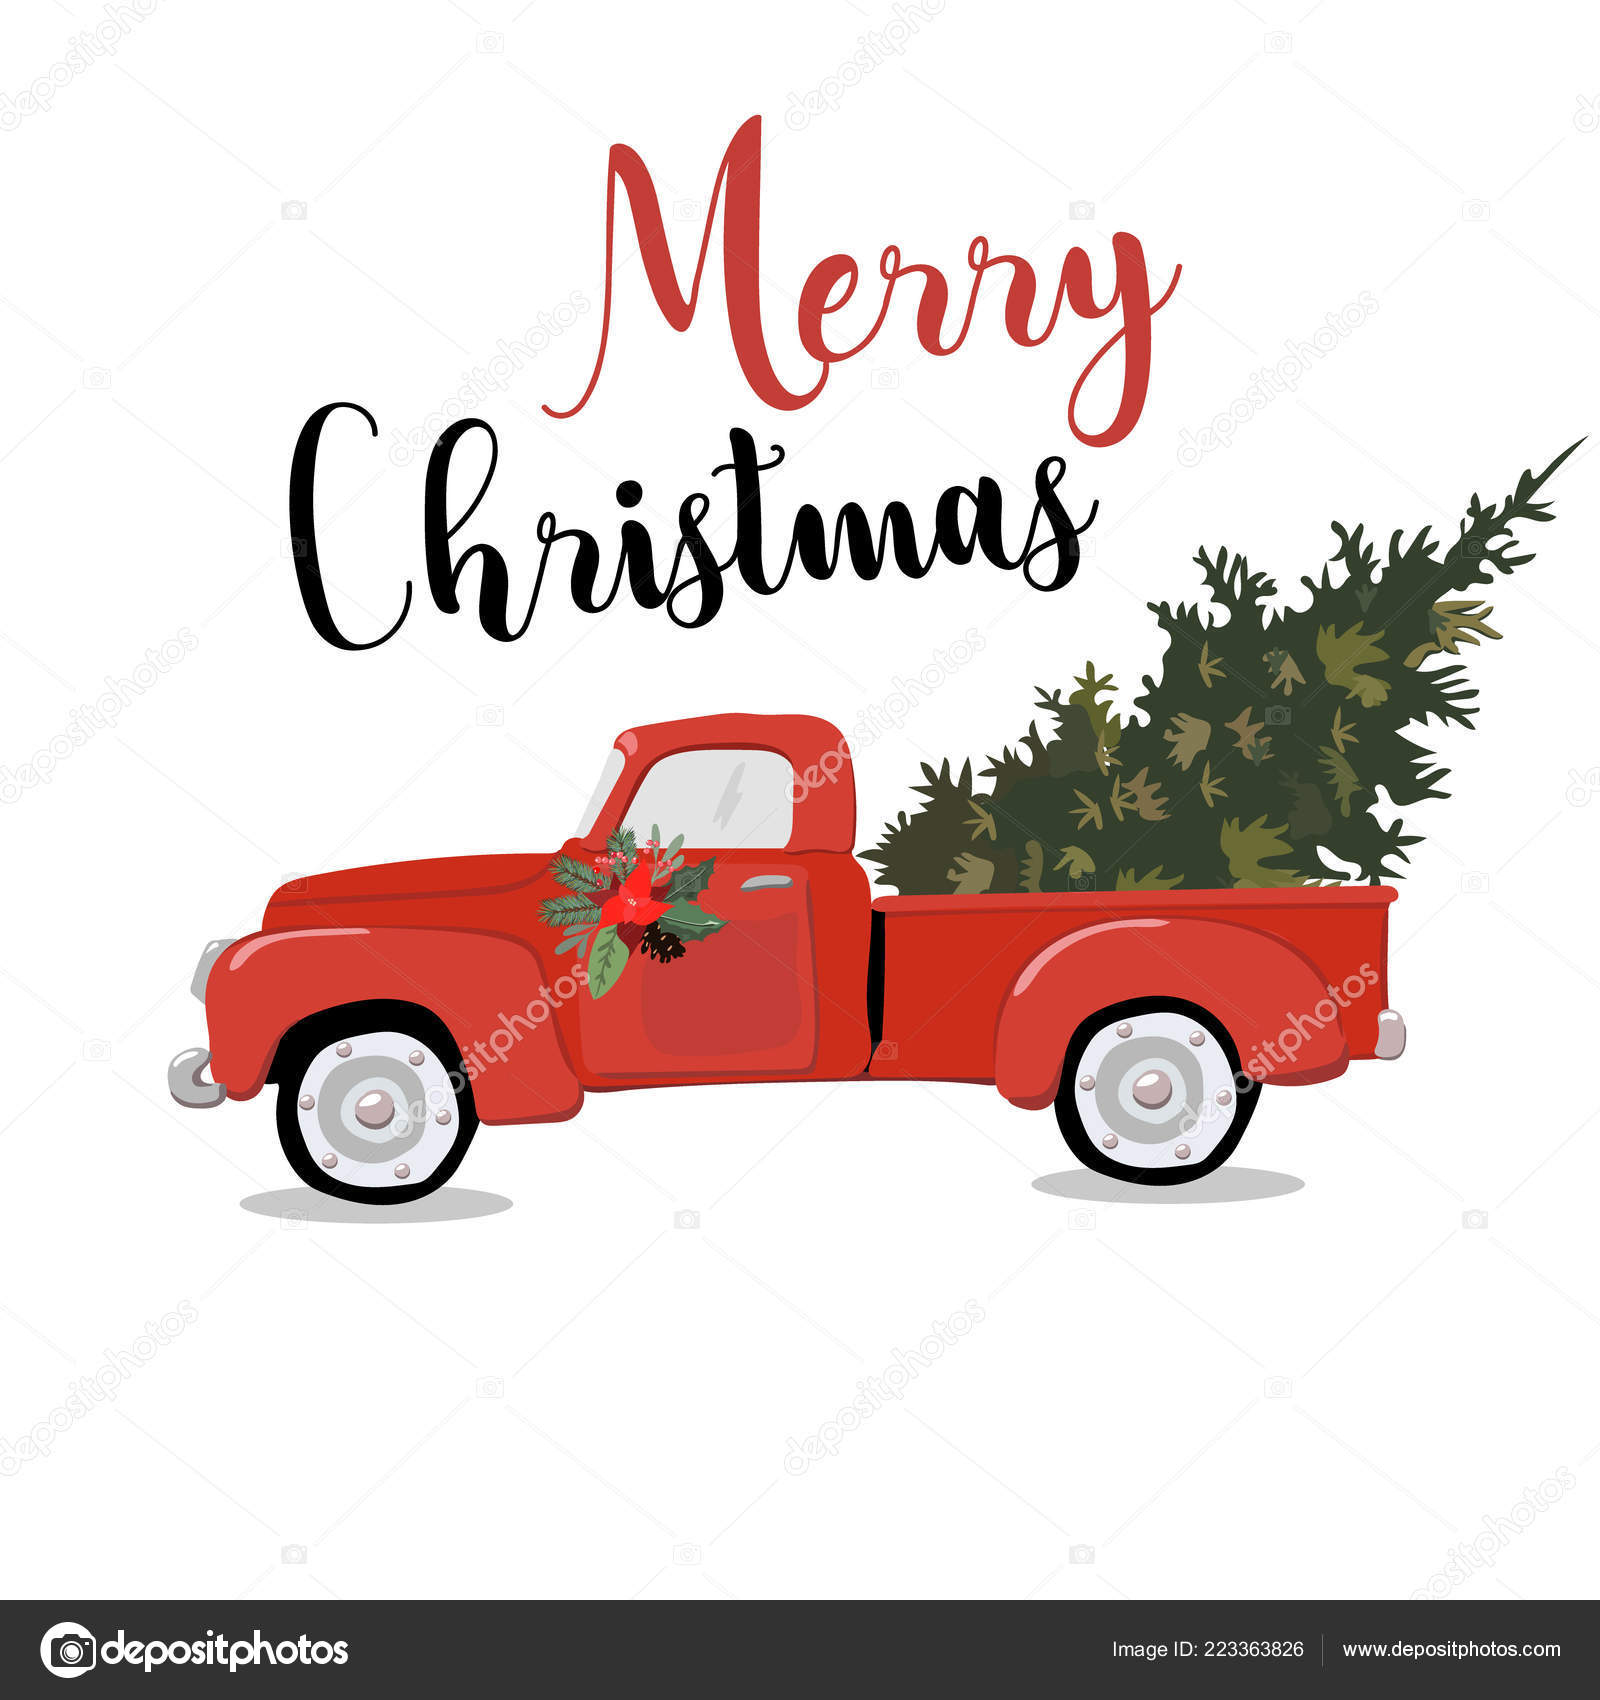 Merry Christmas Greeting Card Illustration Of Vintage Red Car With Xmas Pine Tree Gift On Roof Eps10 Vector Stock Vector C Annamaglyak 223363826